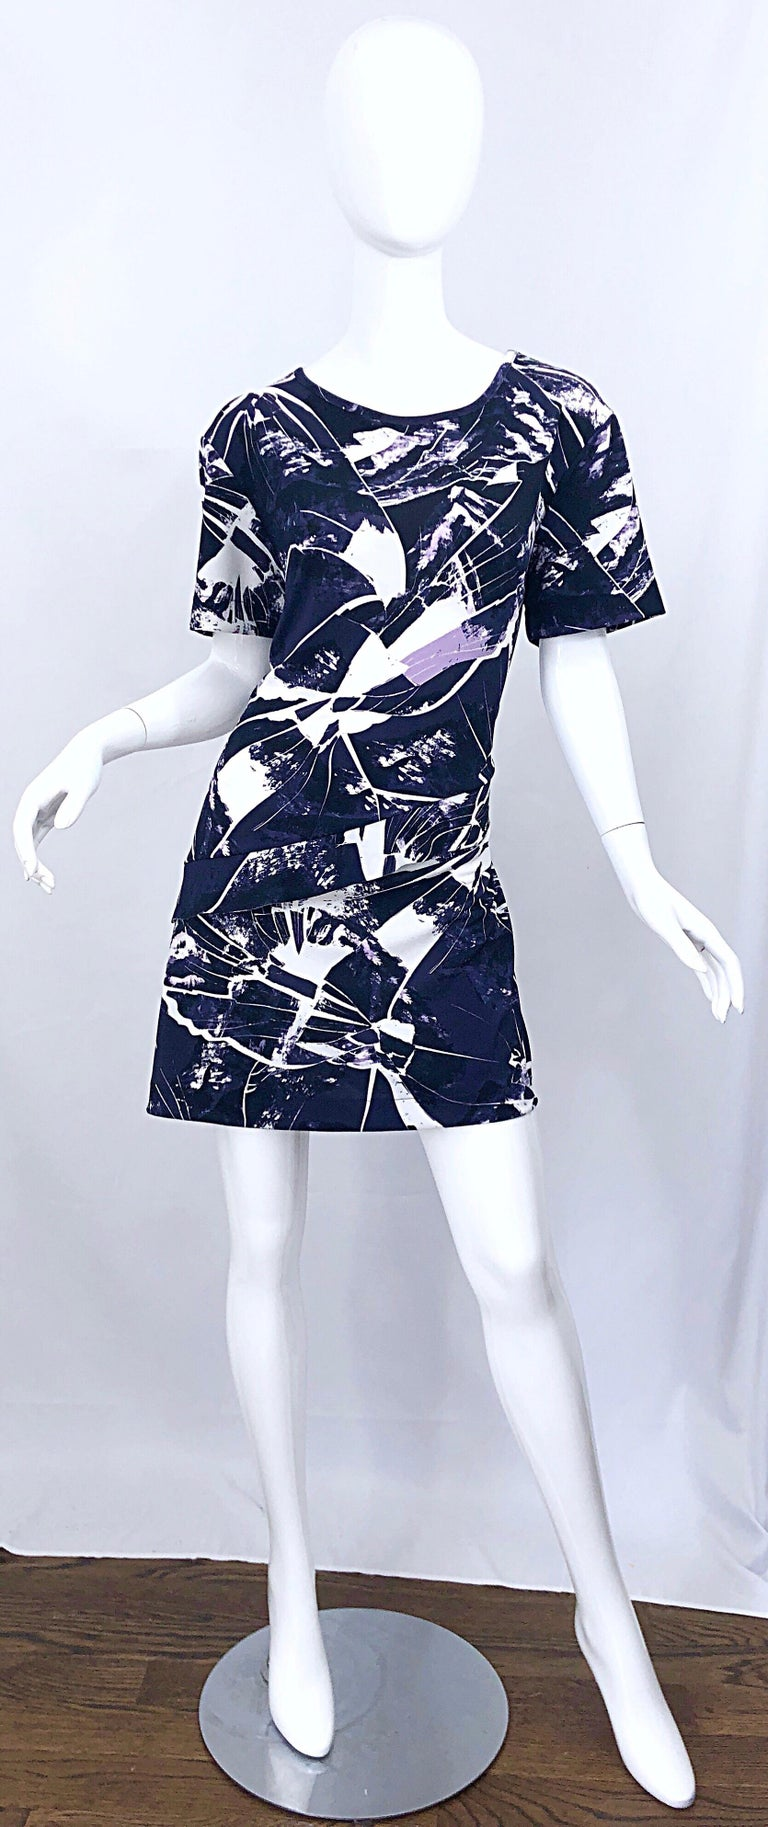 Vintage Kenzo Large Size 1990s Abstract Print Navy Blue + Purple 90s Mini Dress For Sale 9